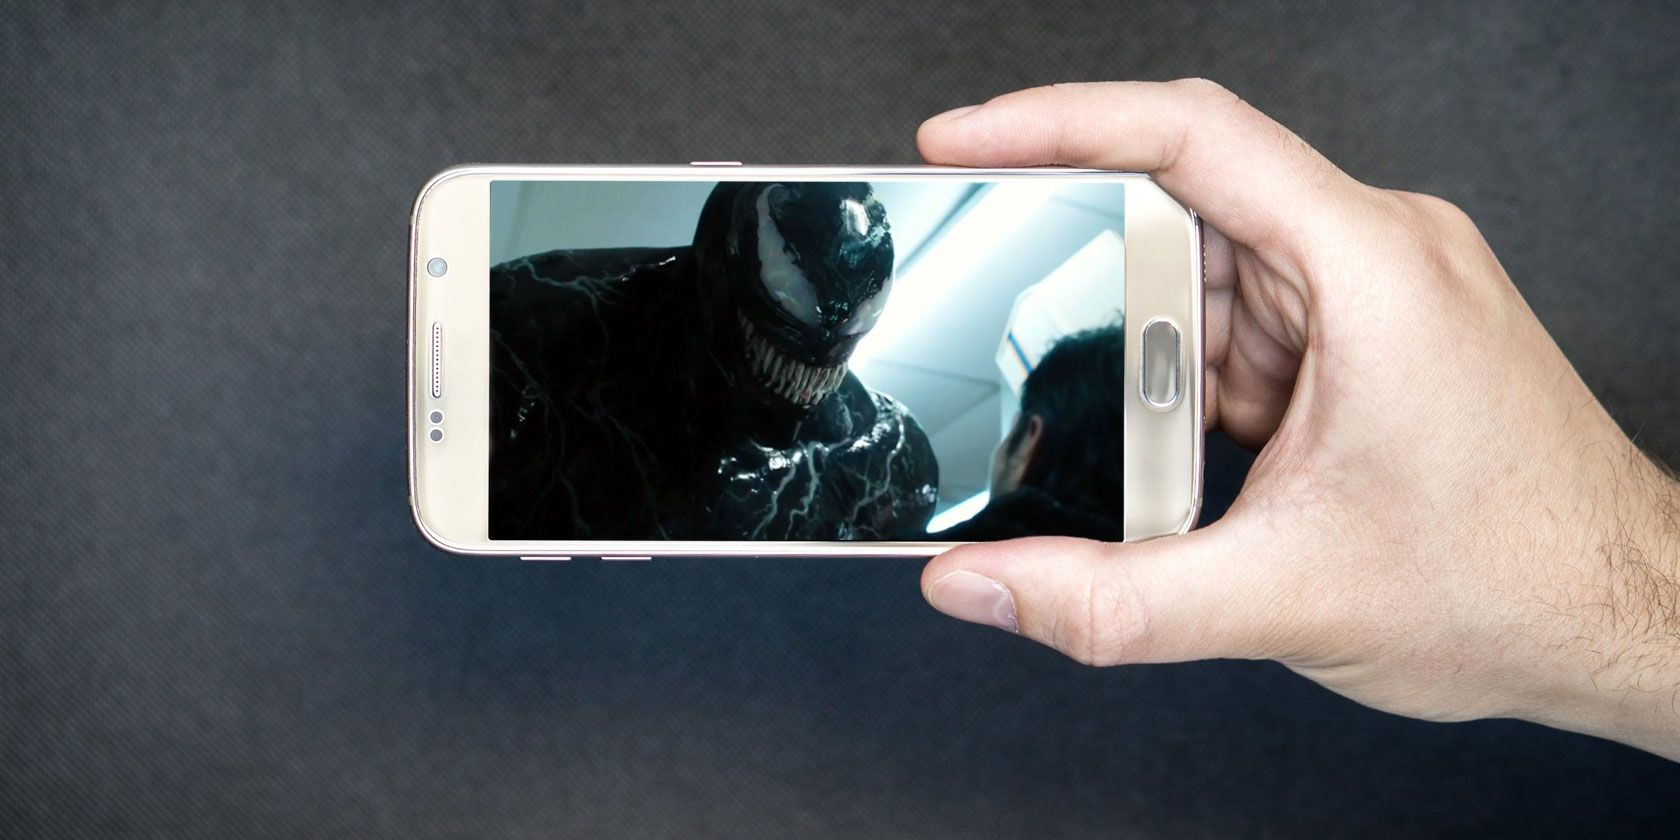 MakeUseOf | The 9 Best Free Movie Apps to Watch Movies Online